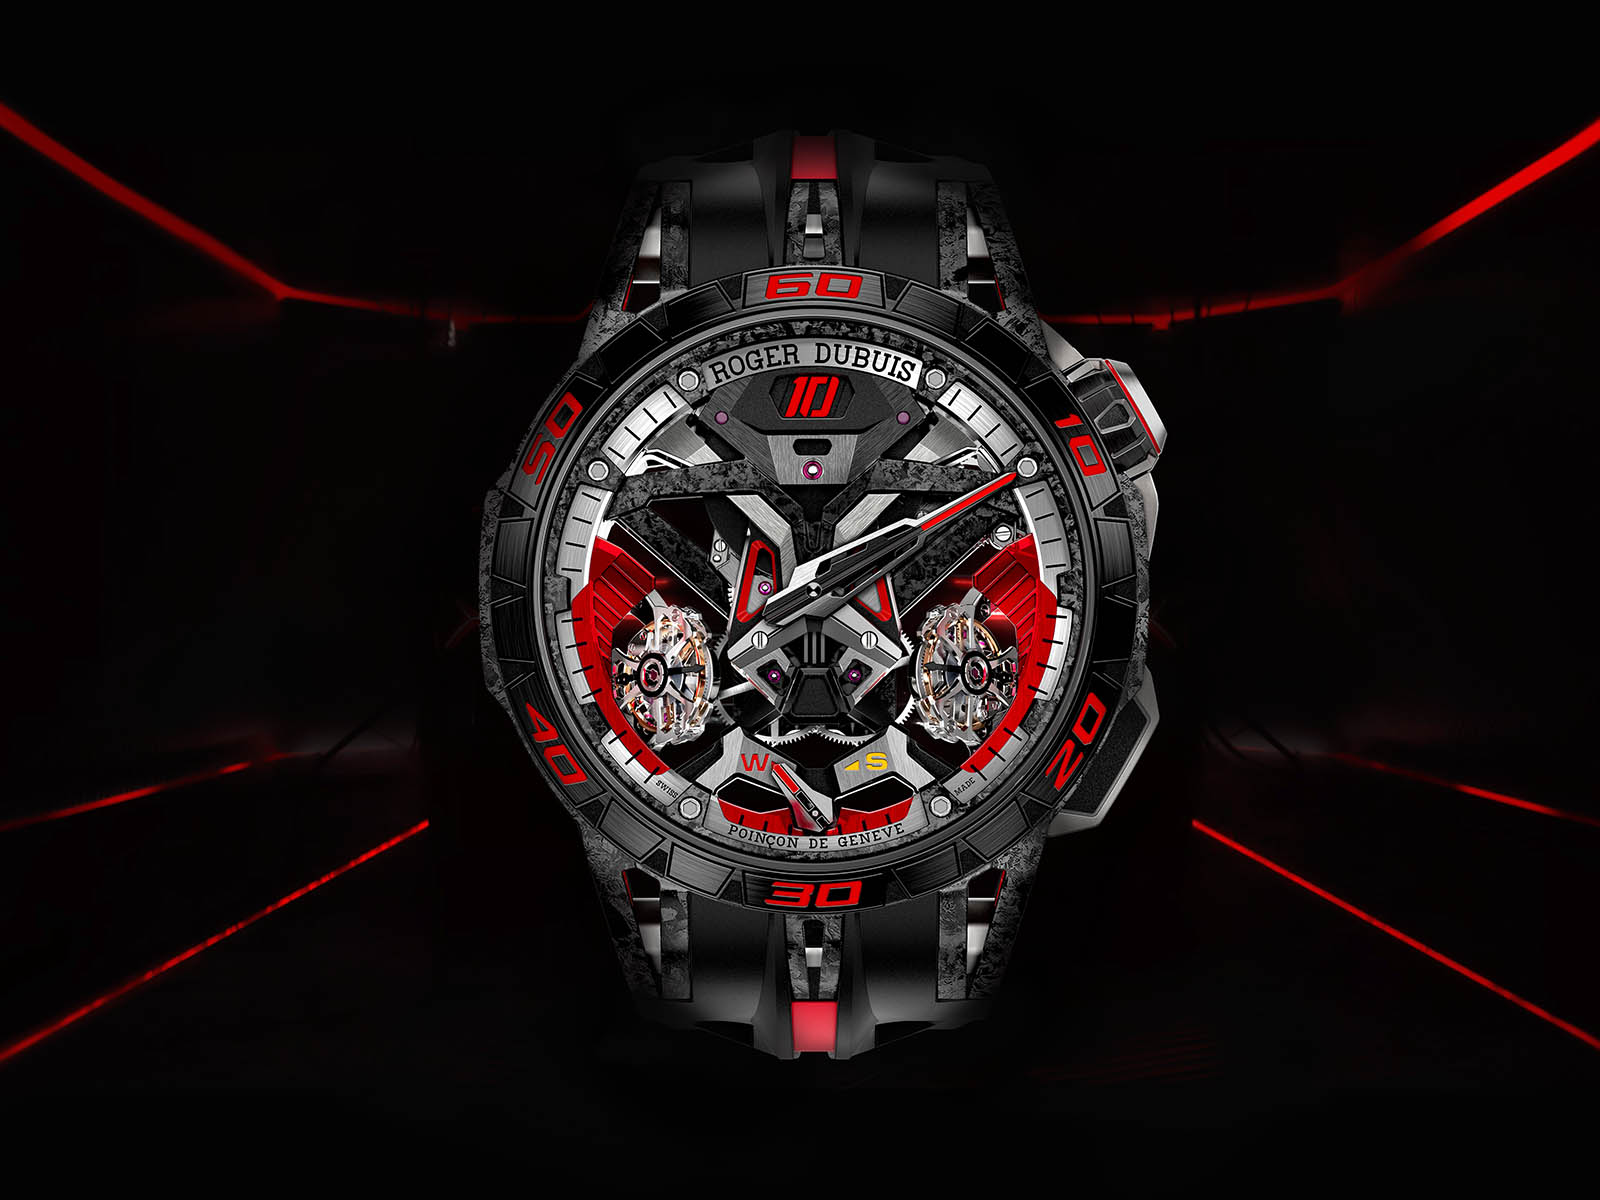 rddbex0765-roger-dubuis-excalibur-one-off-2.jpg